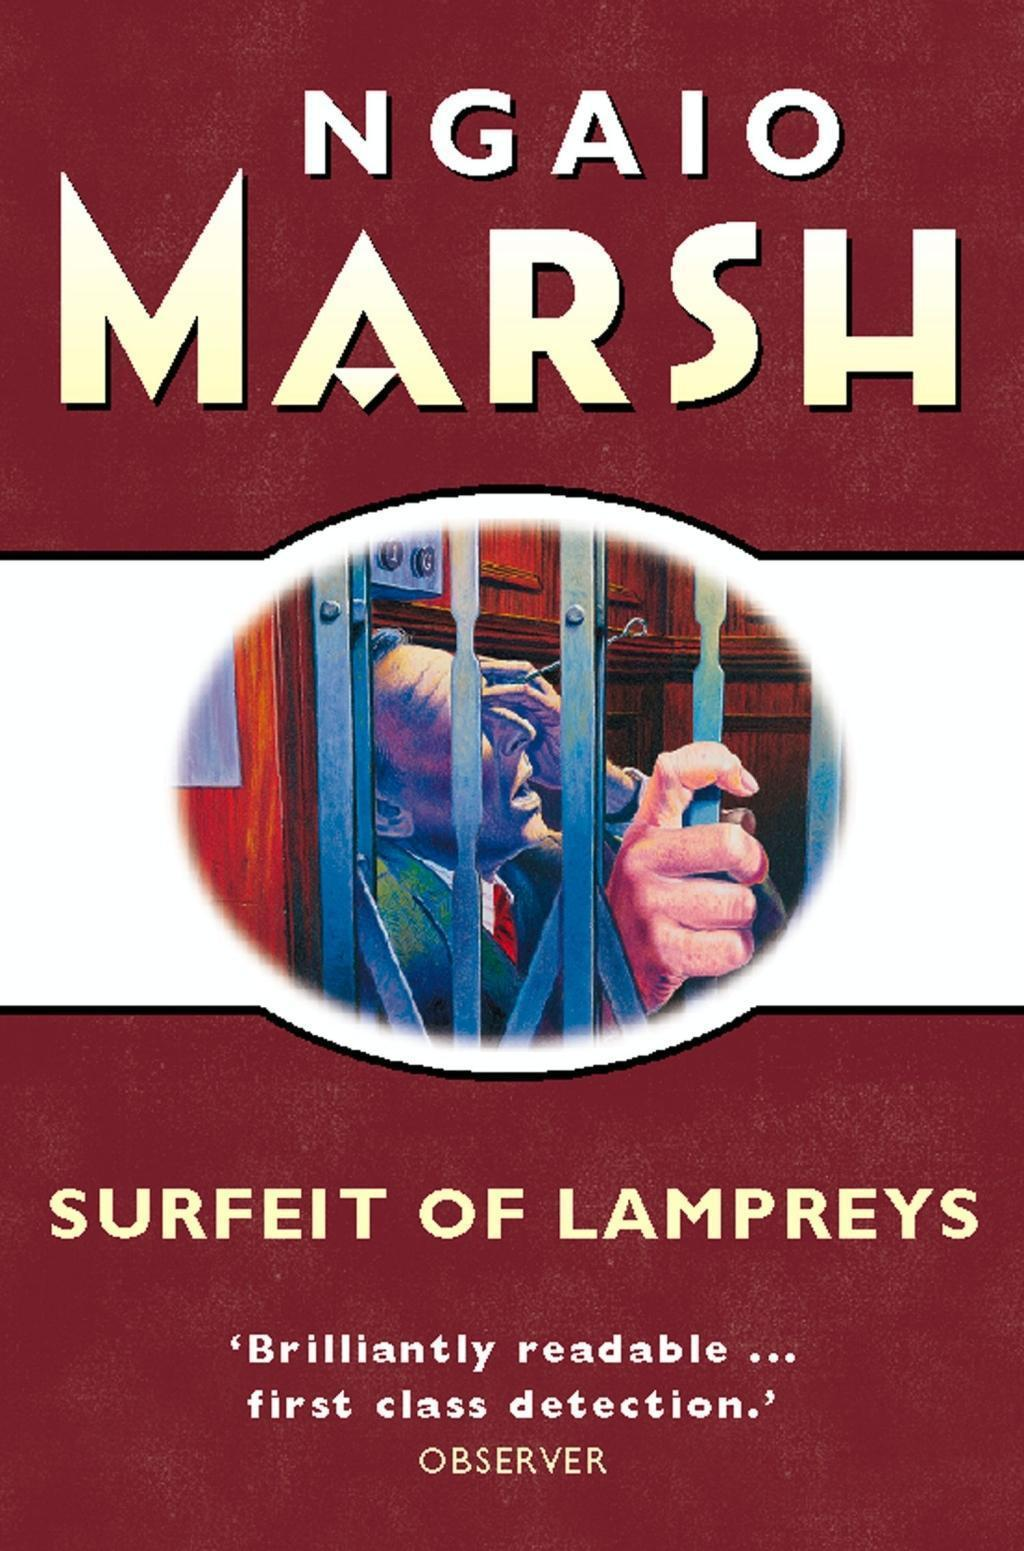 A Surfeit of Lampreys (The Ngaio Marsh Collection)